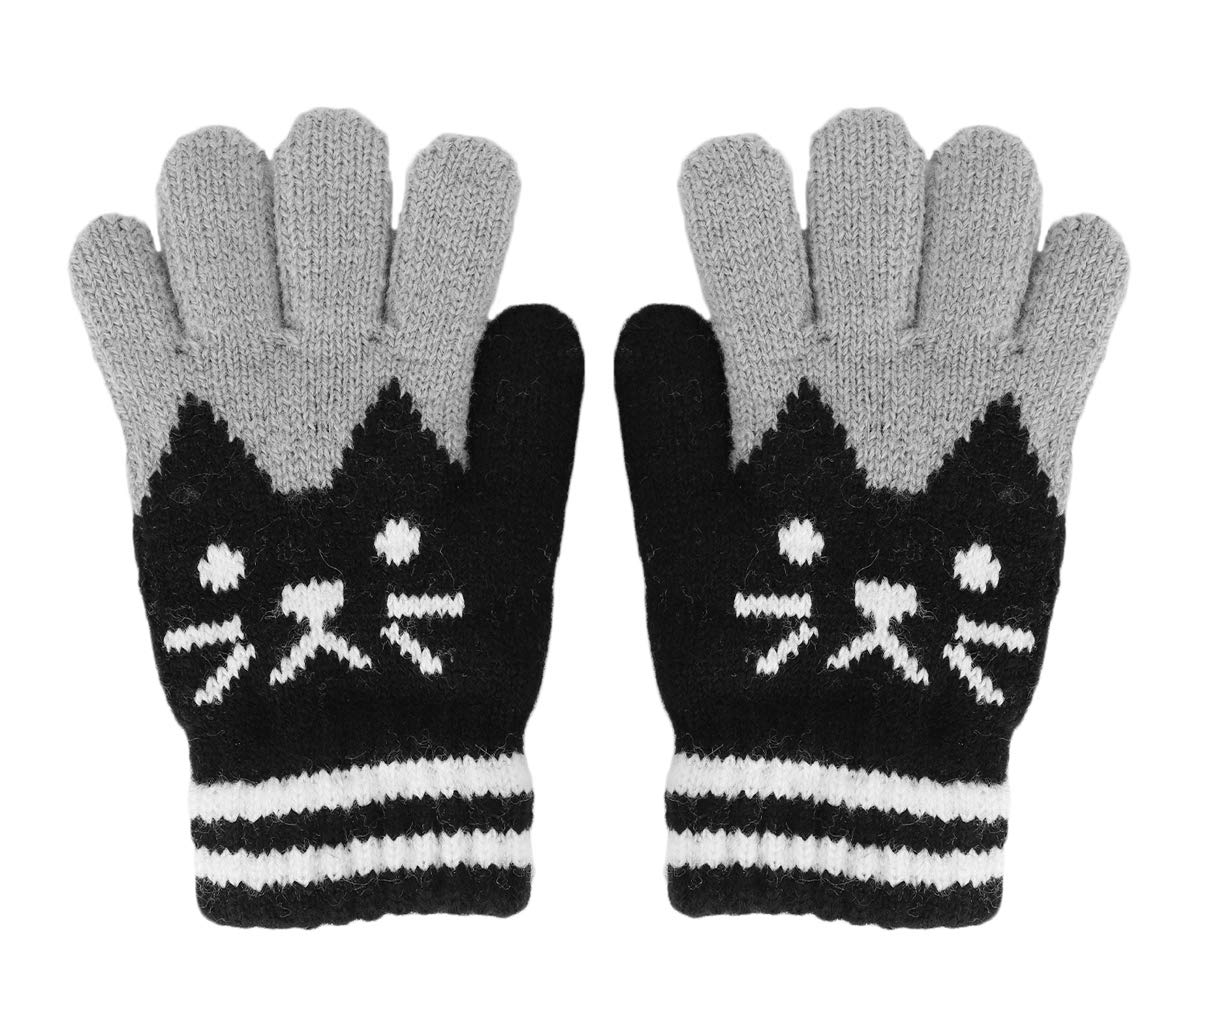 PURFUN Super Cute Cat Design Winter Thermal Knitted Gloves Short Skate Cycling Ski Gloves Mittens Hand Warmer for 3-6 Yrs Girls Boys, Christmas New Year Gift